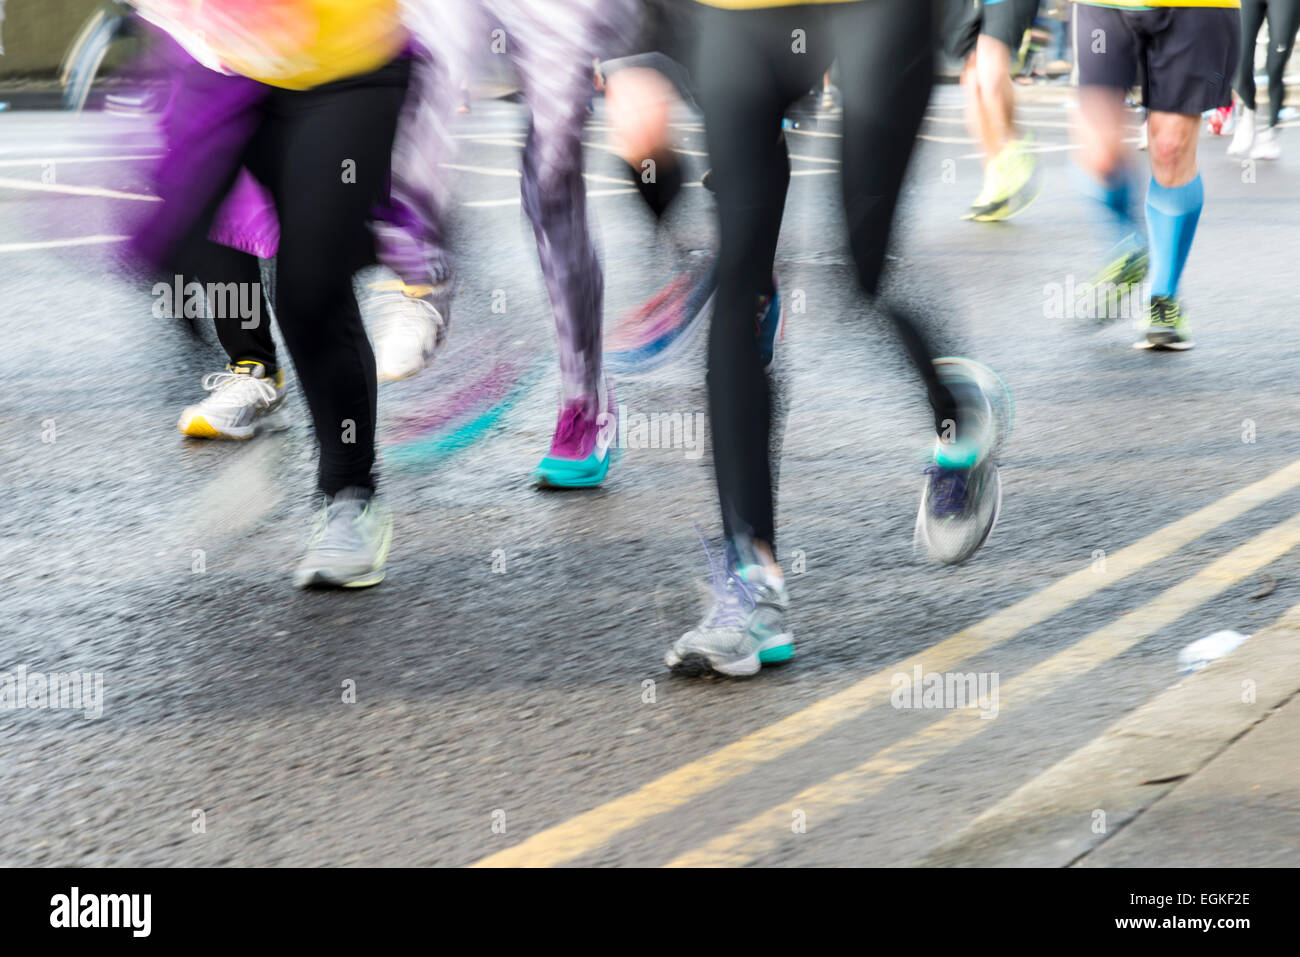 Blurred legs and feet of marathon runners.  Motion blur athletes running. - Stock Image